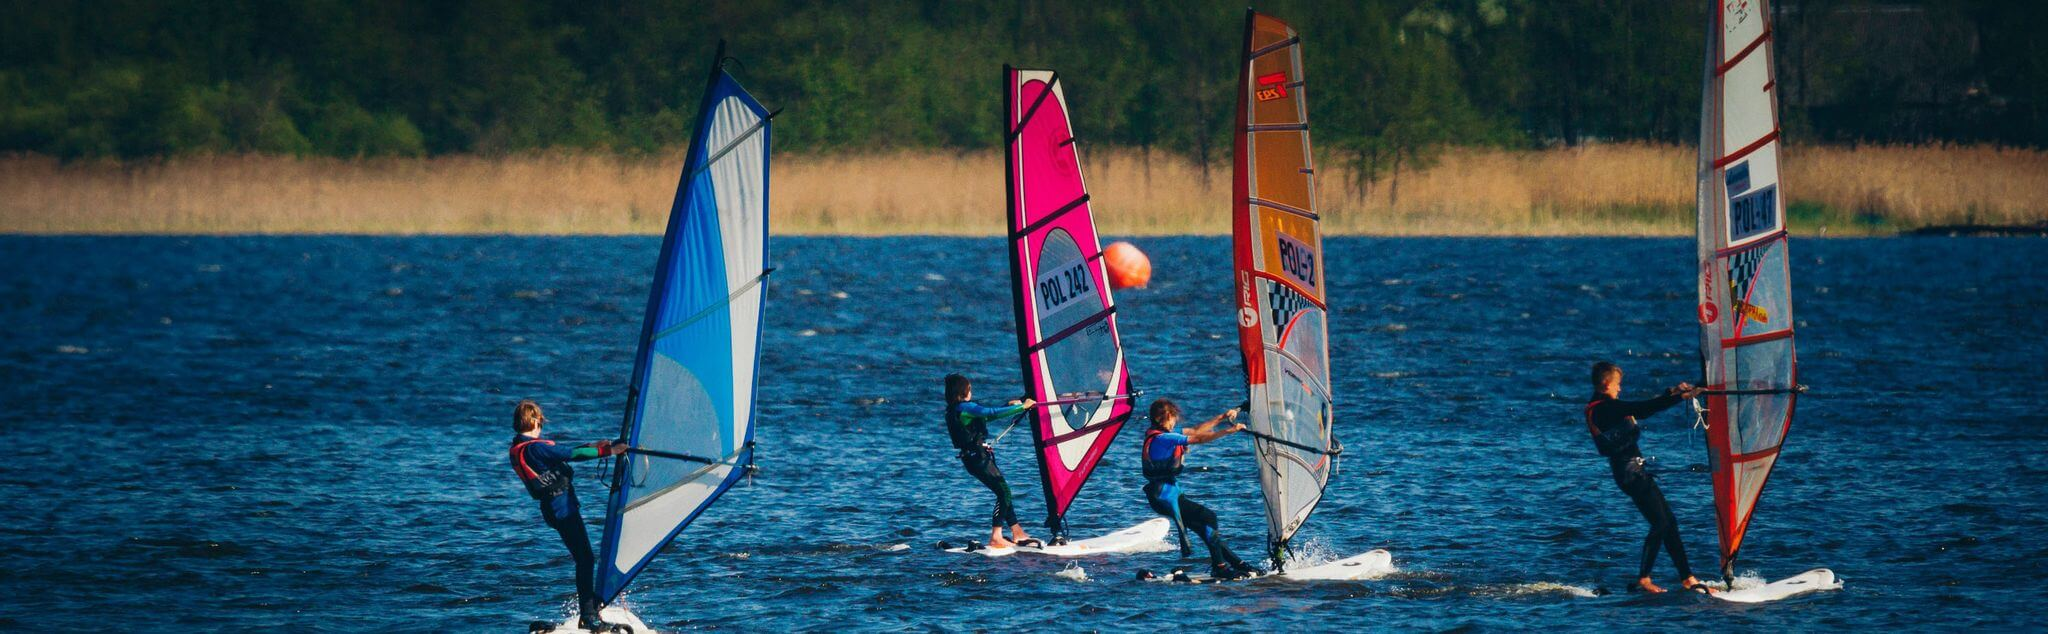 Windsurfing in Pals